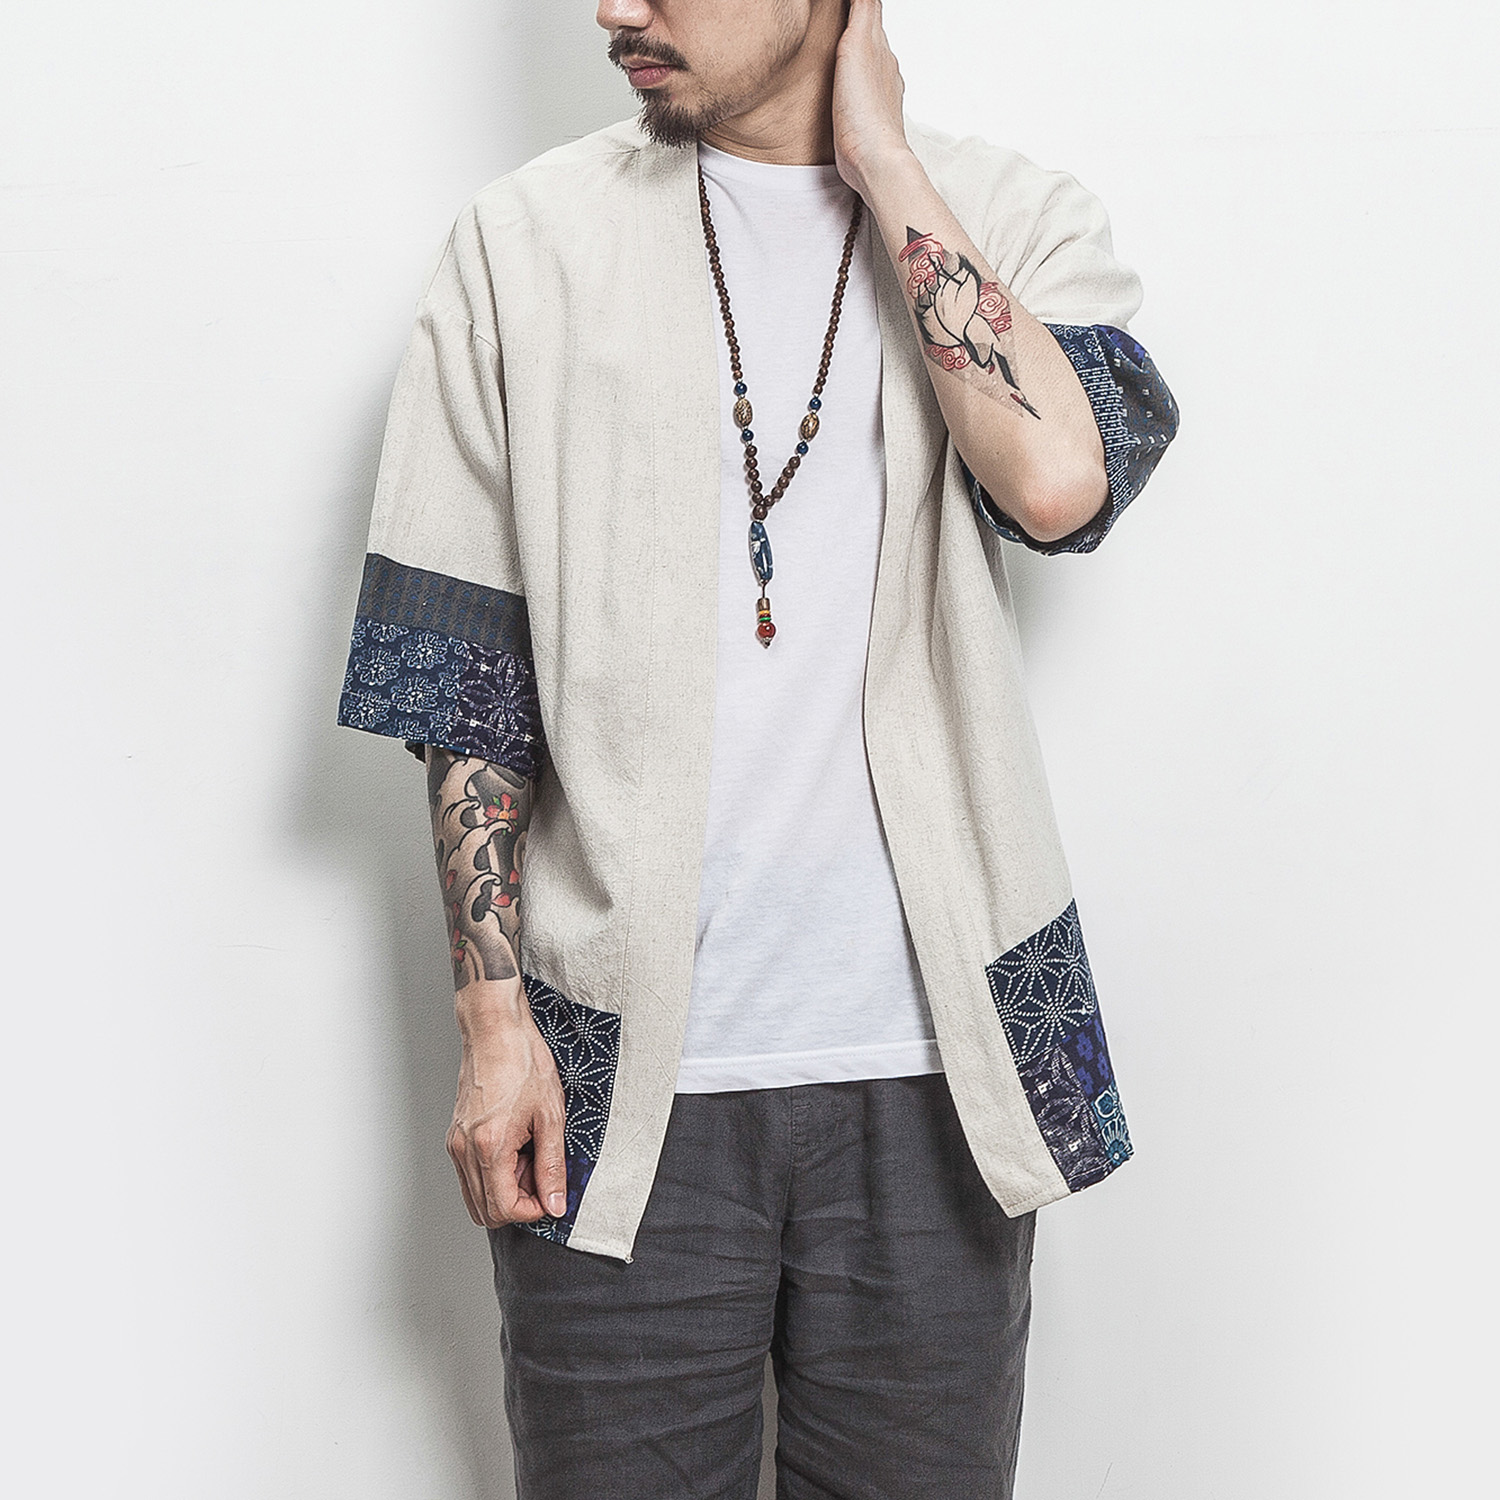 Drop Shipping Cotton Linen Shirt Jackets Men Chinese Streetwear Kimono Shirt Coat Men Linen Cardigan Jackets Coat Plus Size 5XL(China)